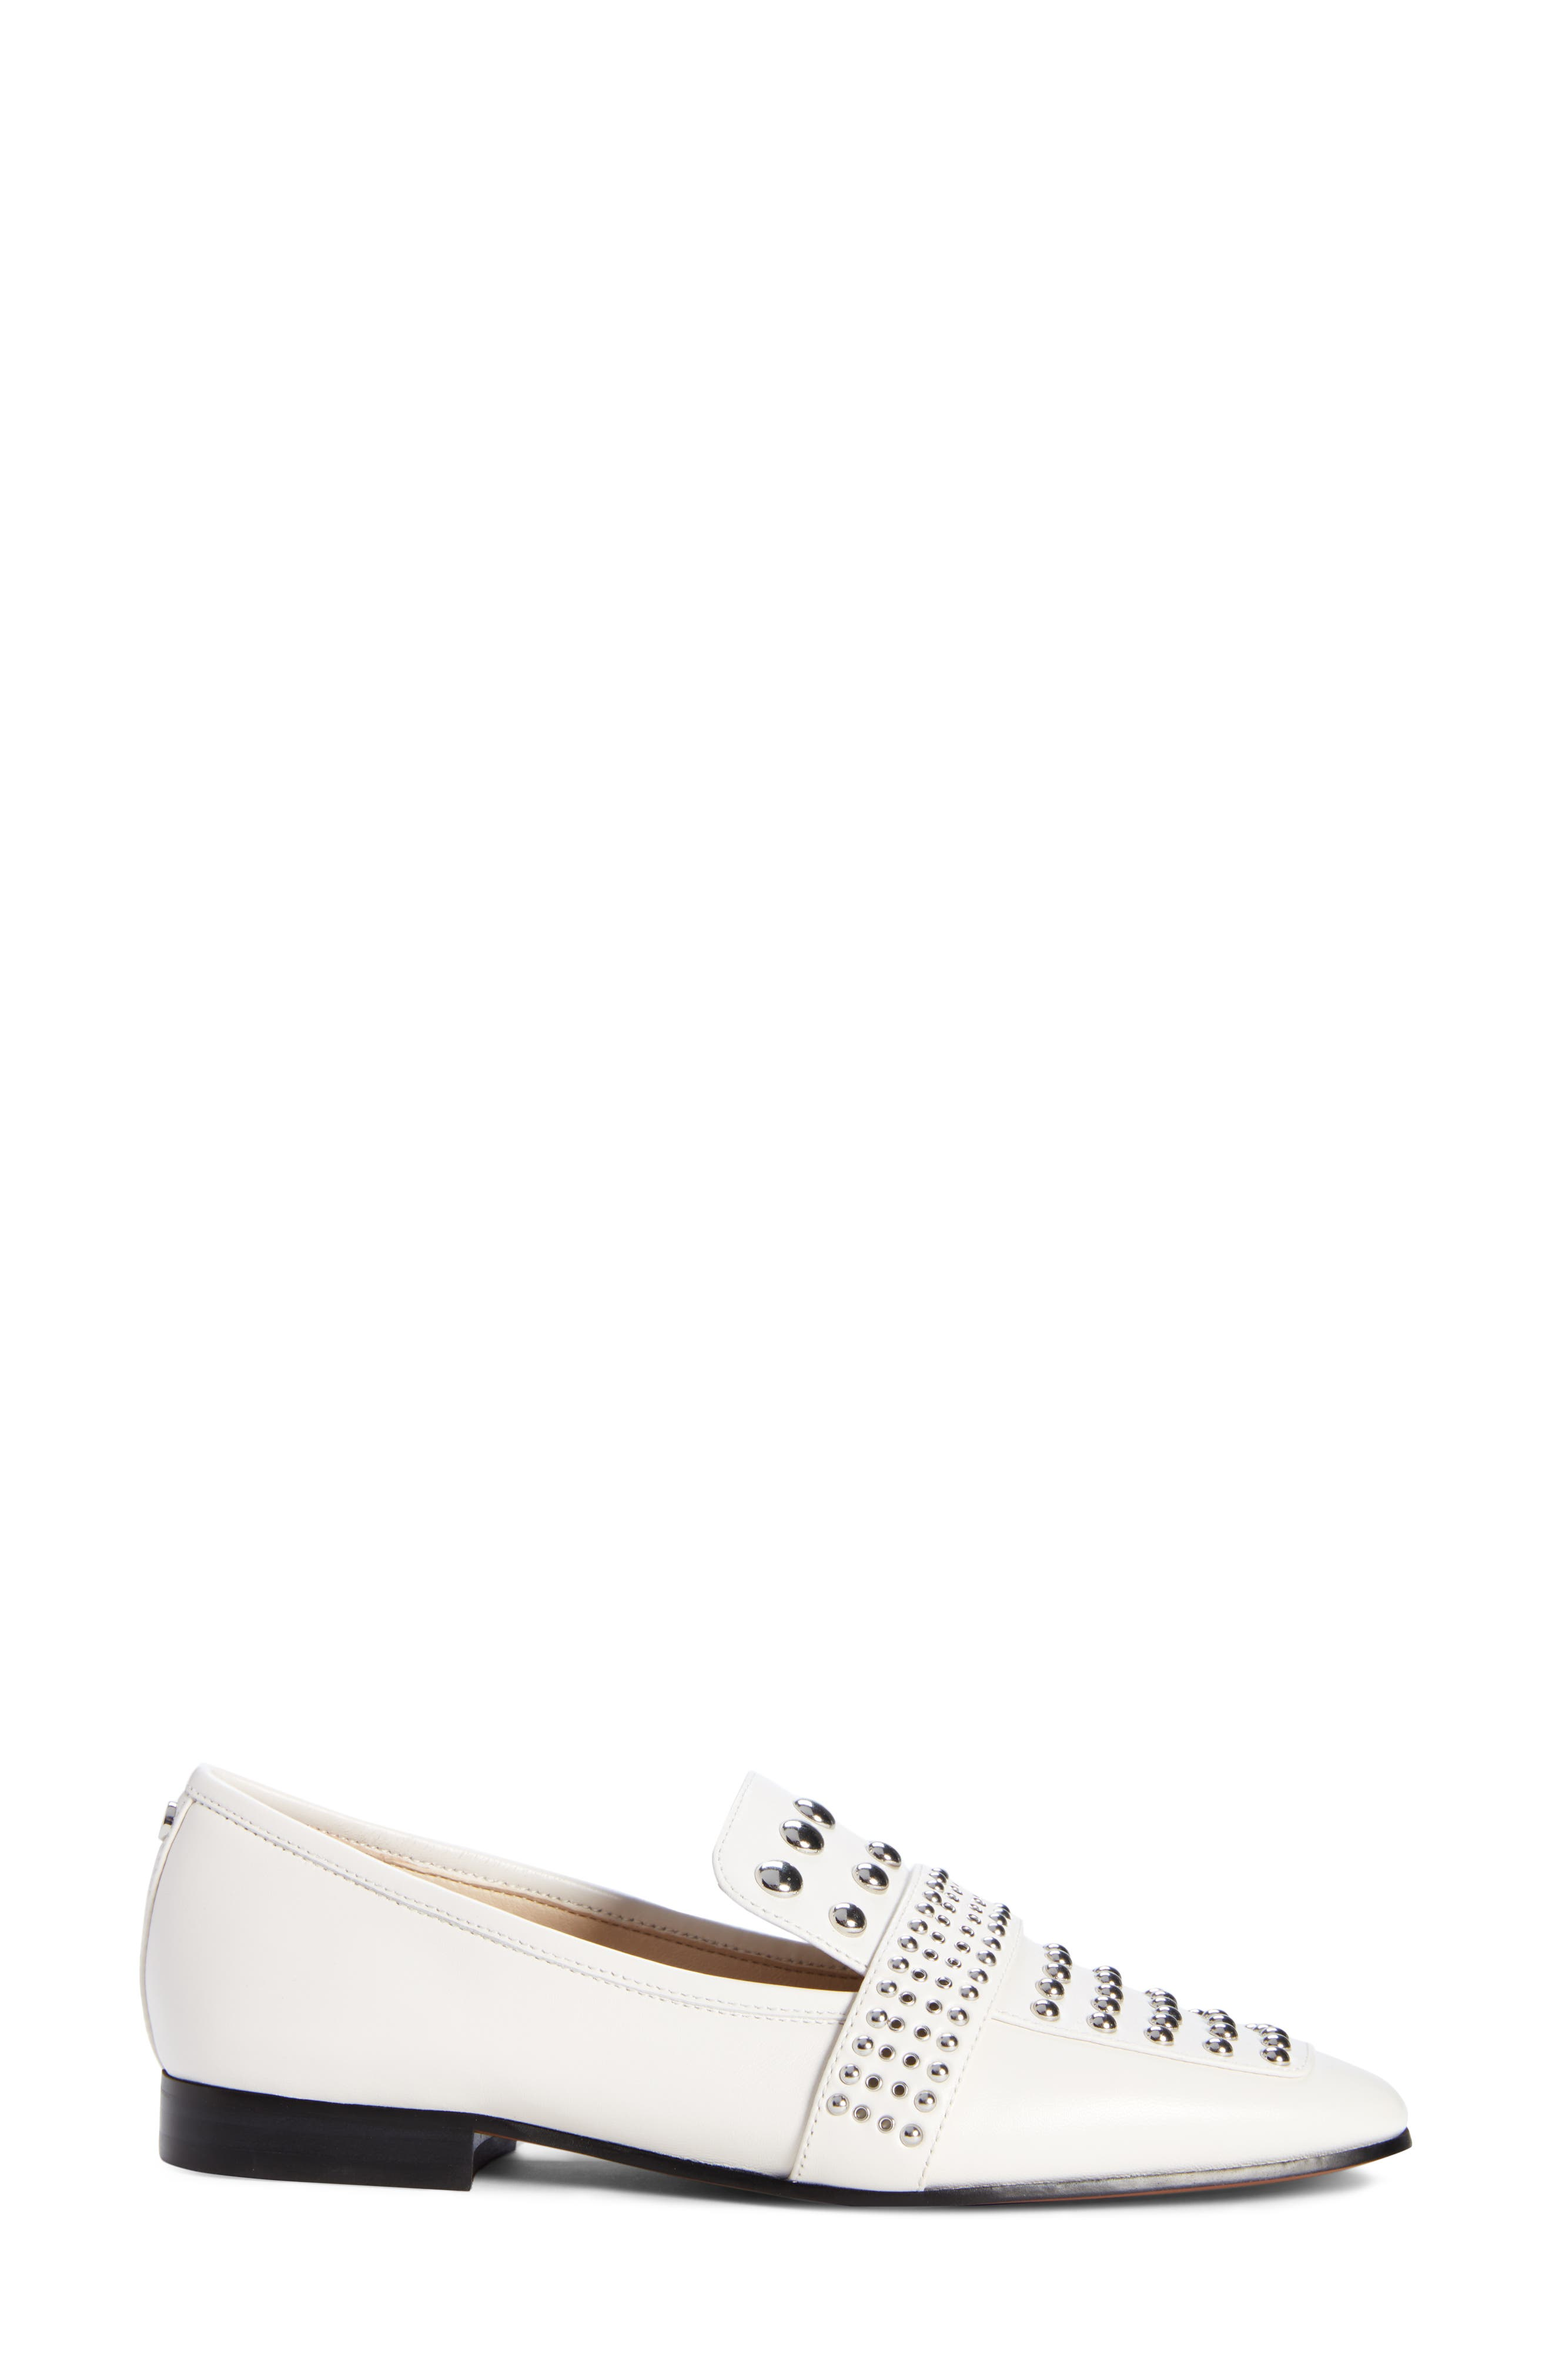 Chesney Loafer,                             Alternate thumbnail 3, color,                             BRIGHT WHITE LEATHER